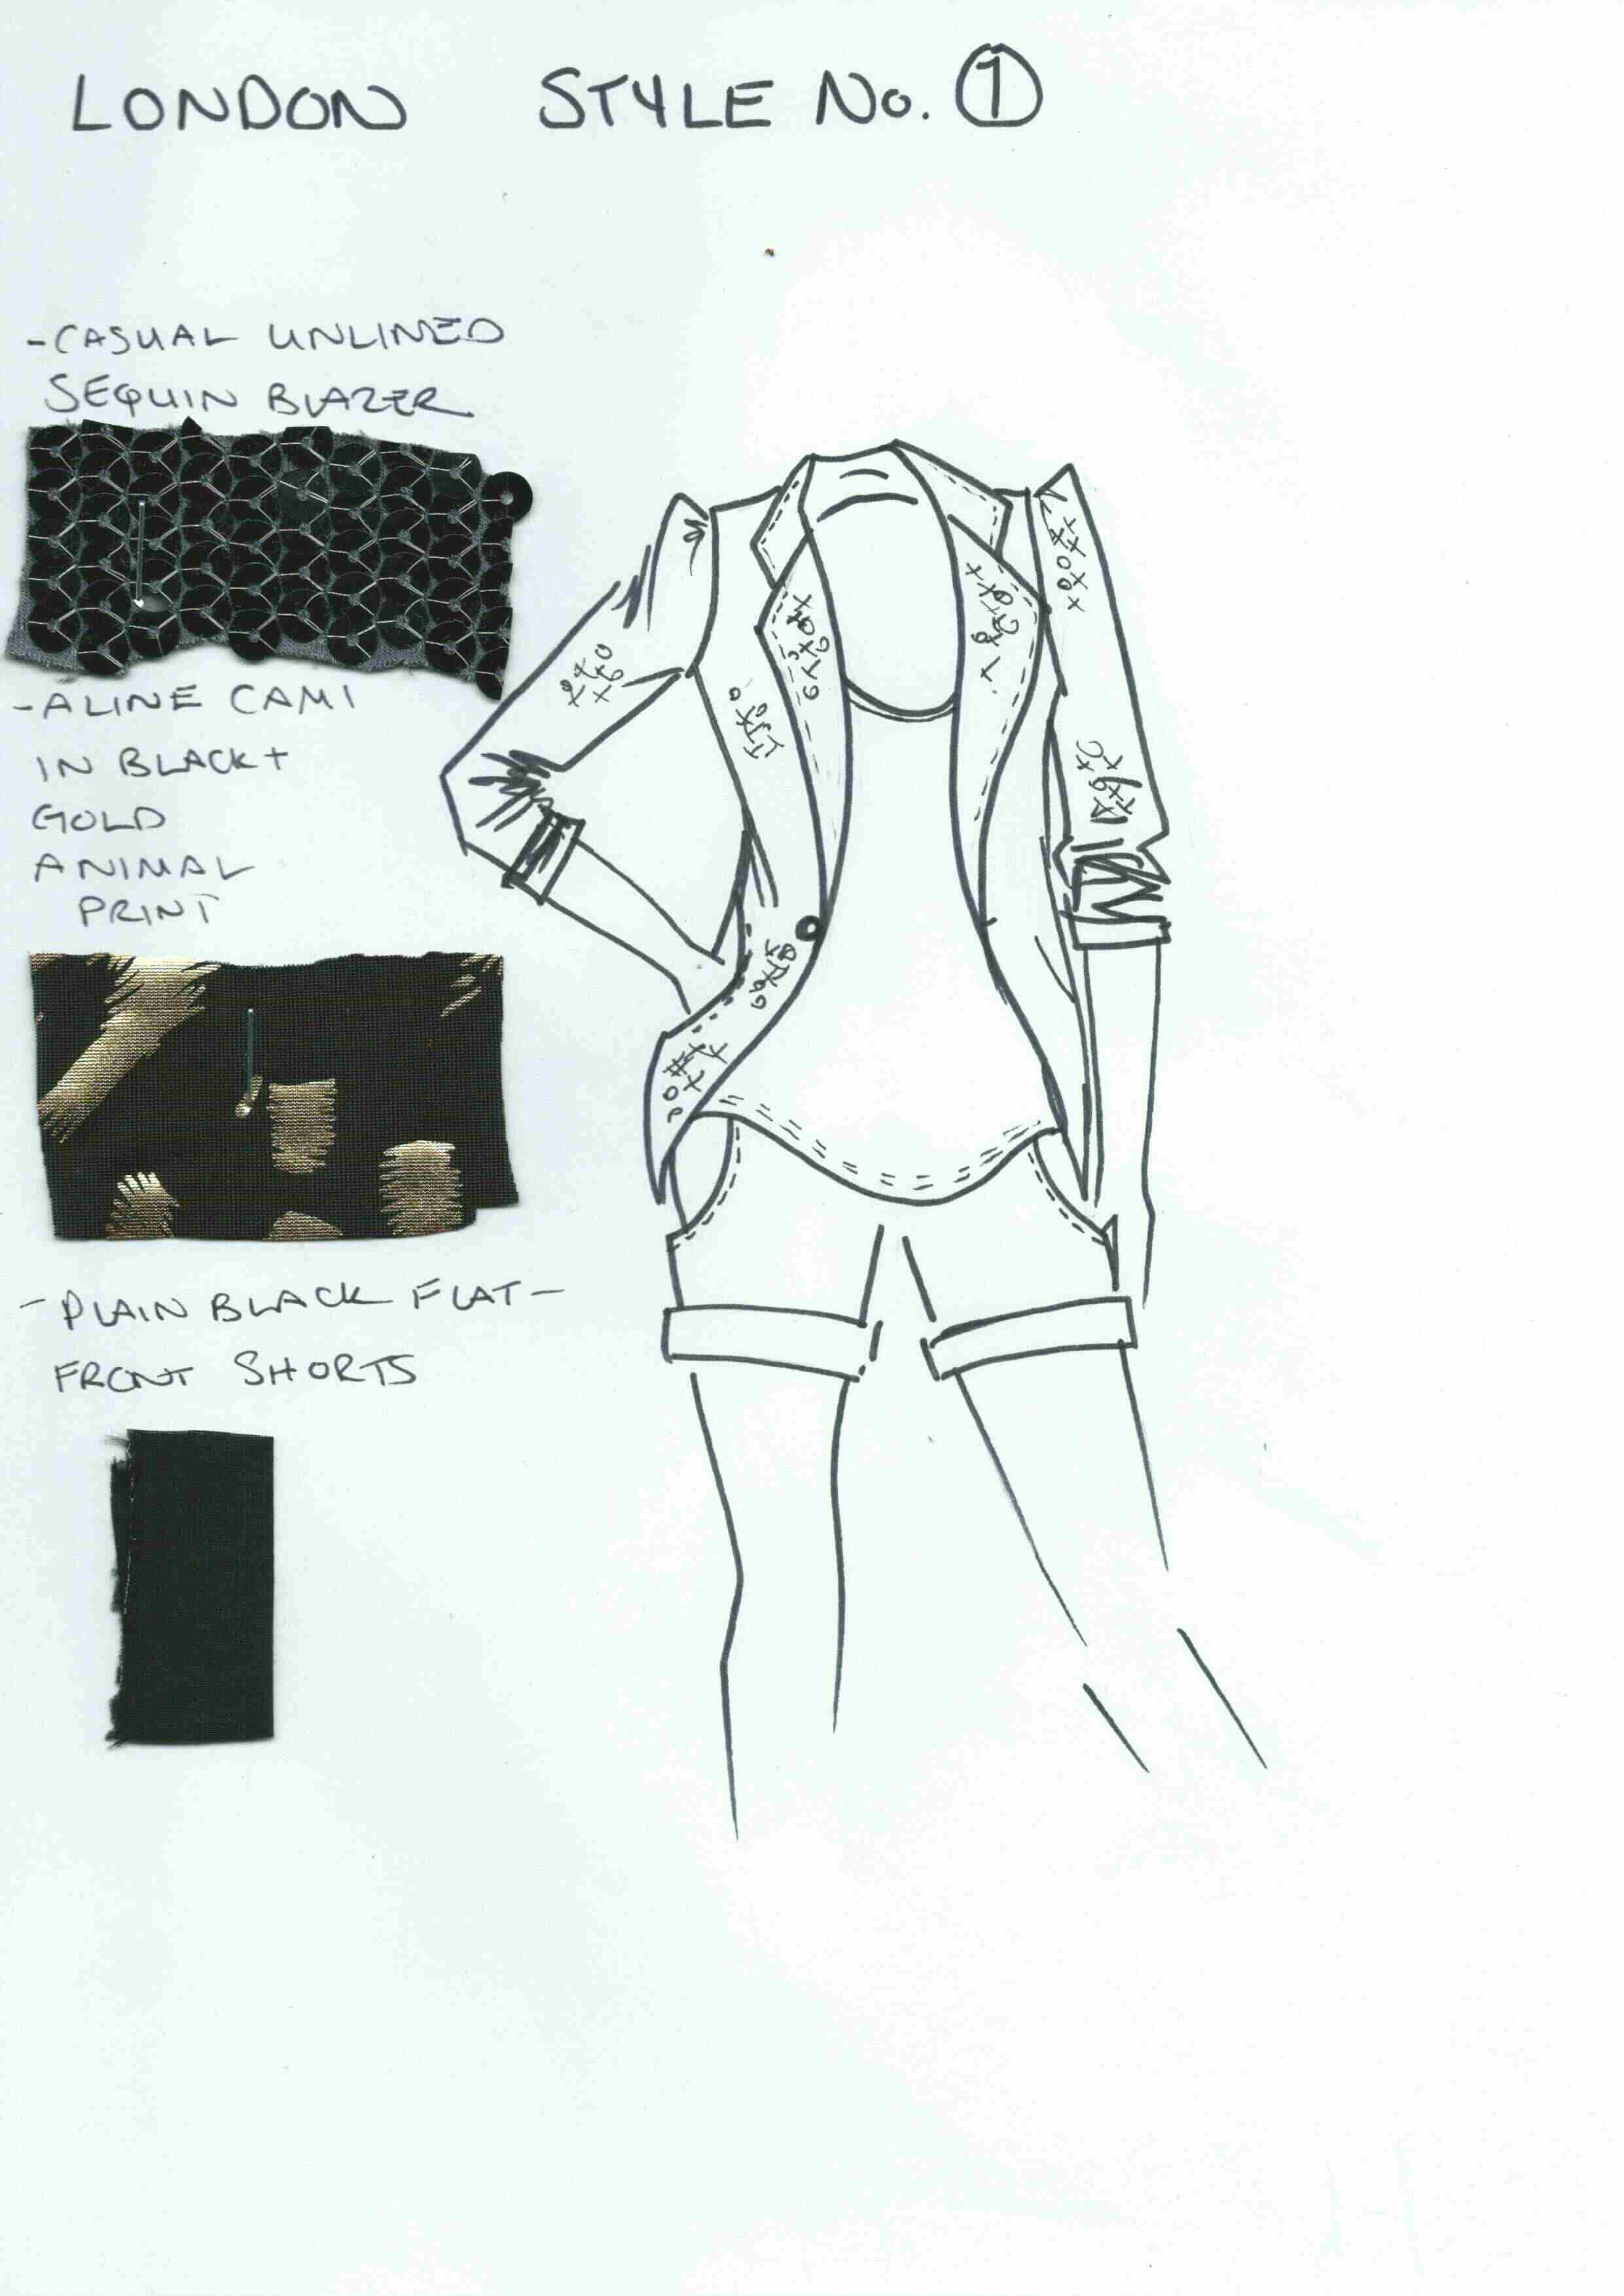 London Style #1 ~ Casual Sequin Blazer & A-Line Cami with Plain Flat Front Shorts